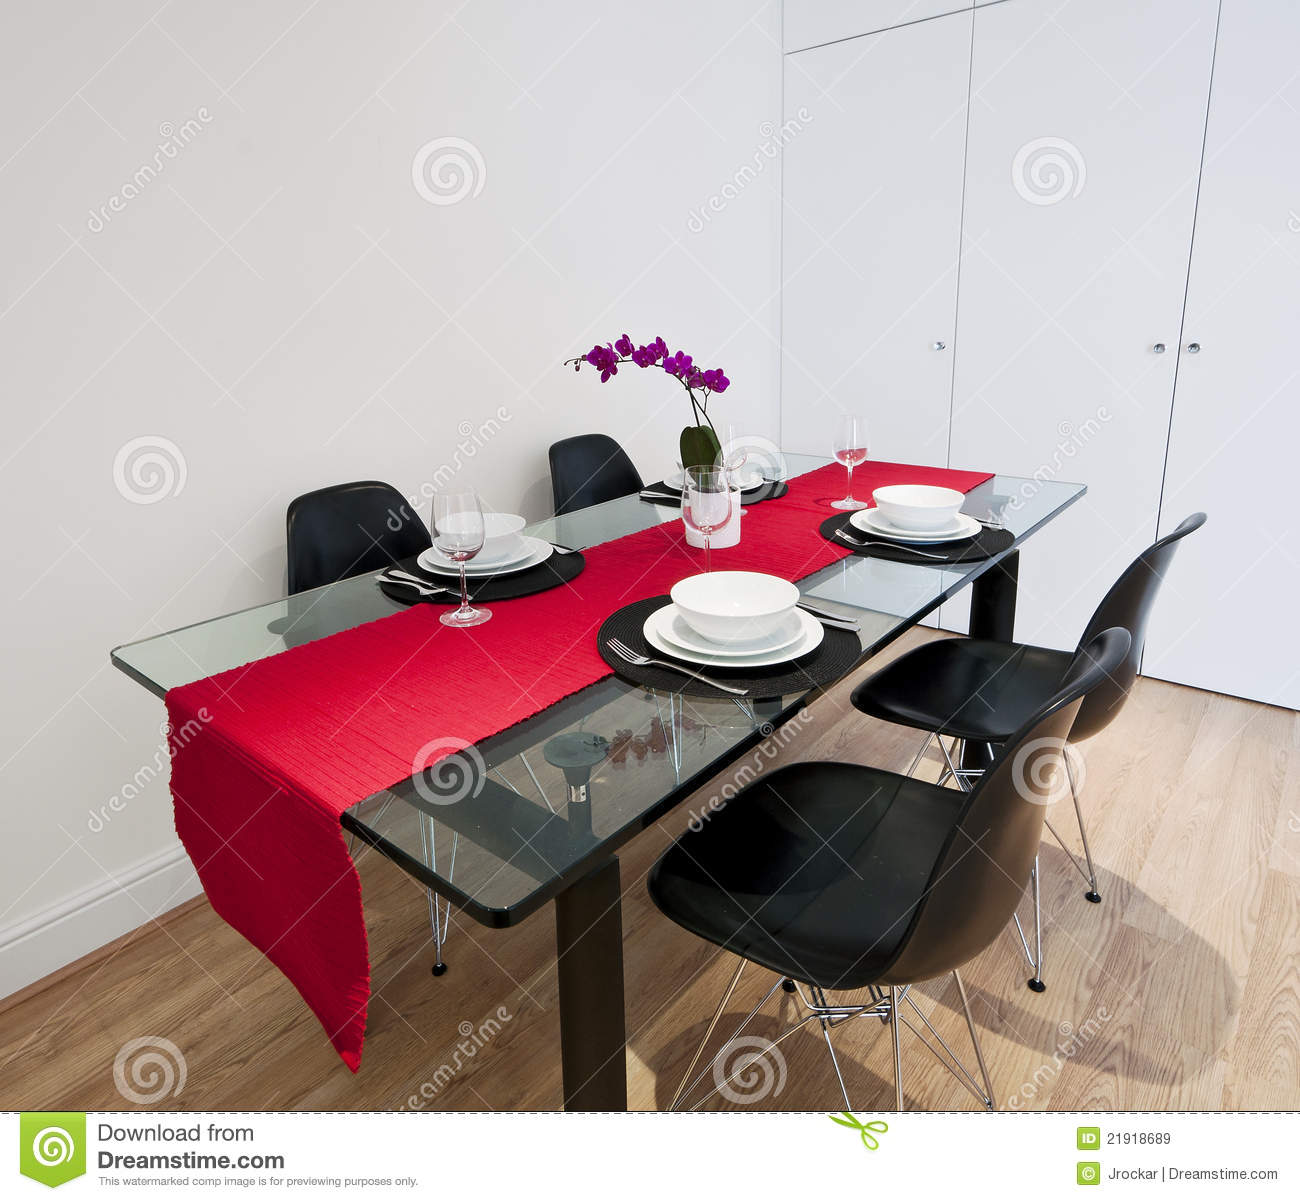 dining-table-red-cloth-21918689 Dining Room Table Plans